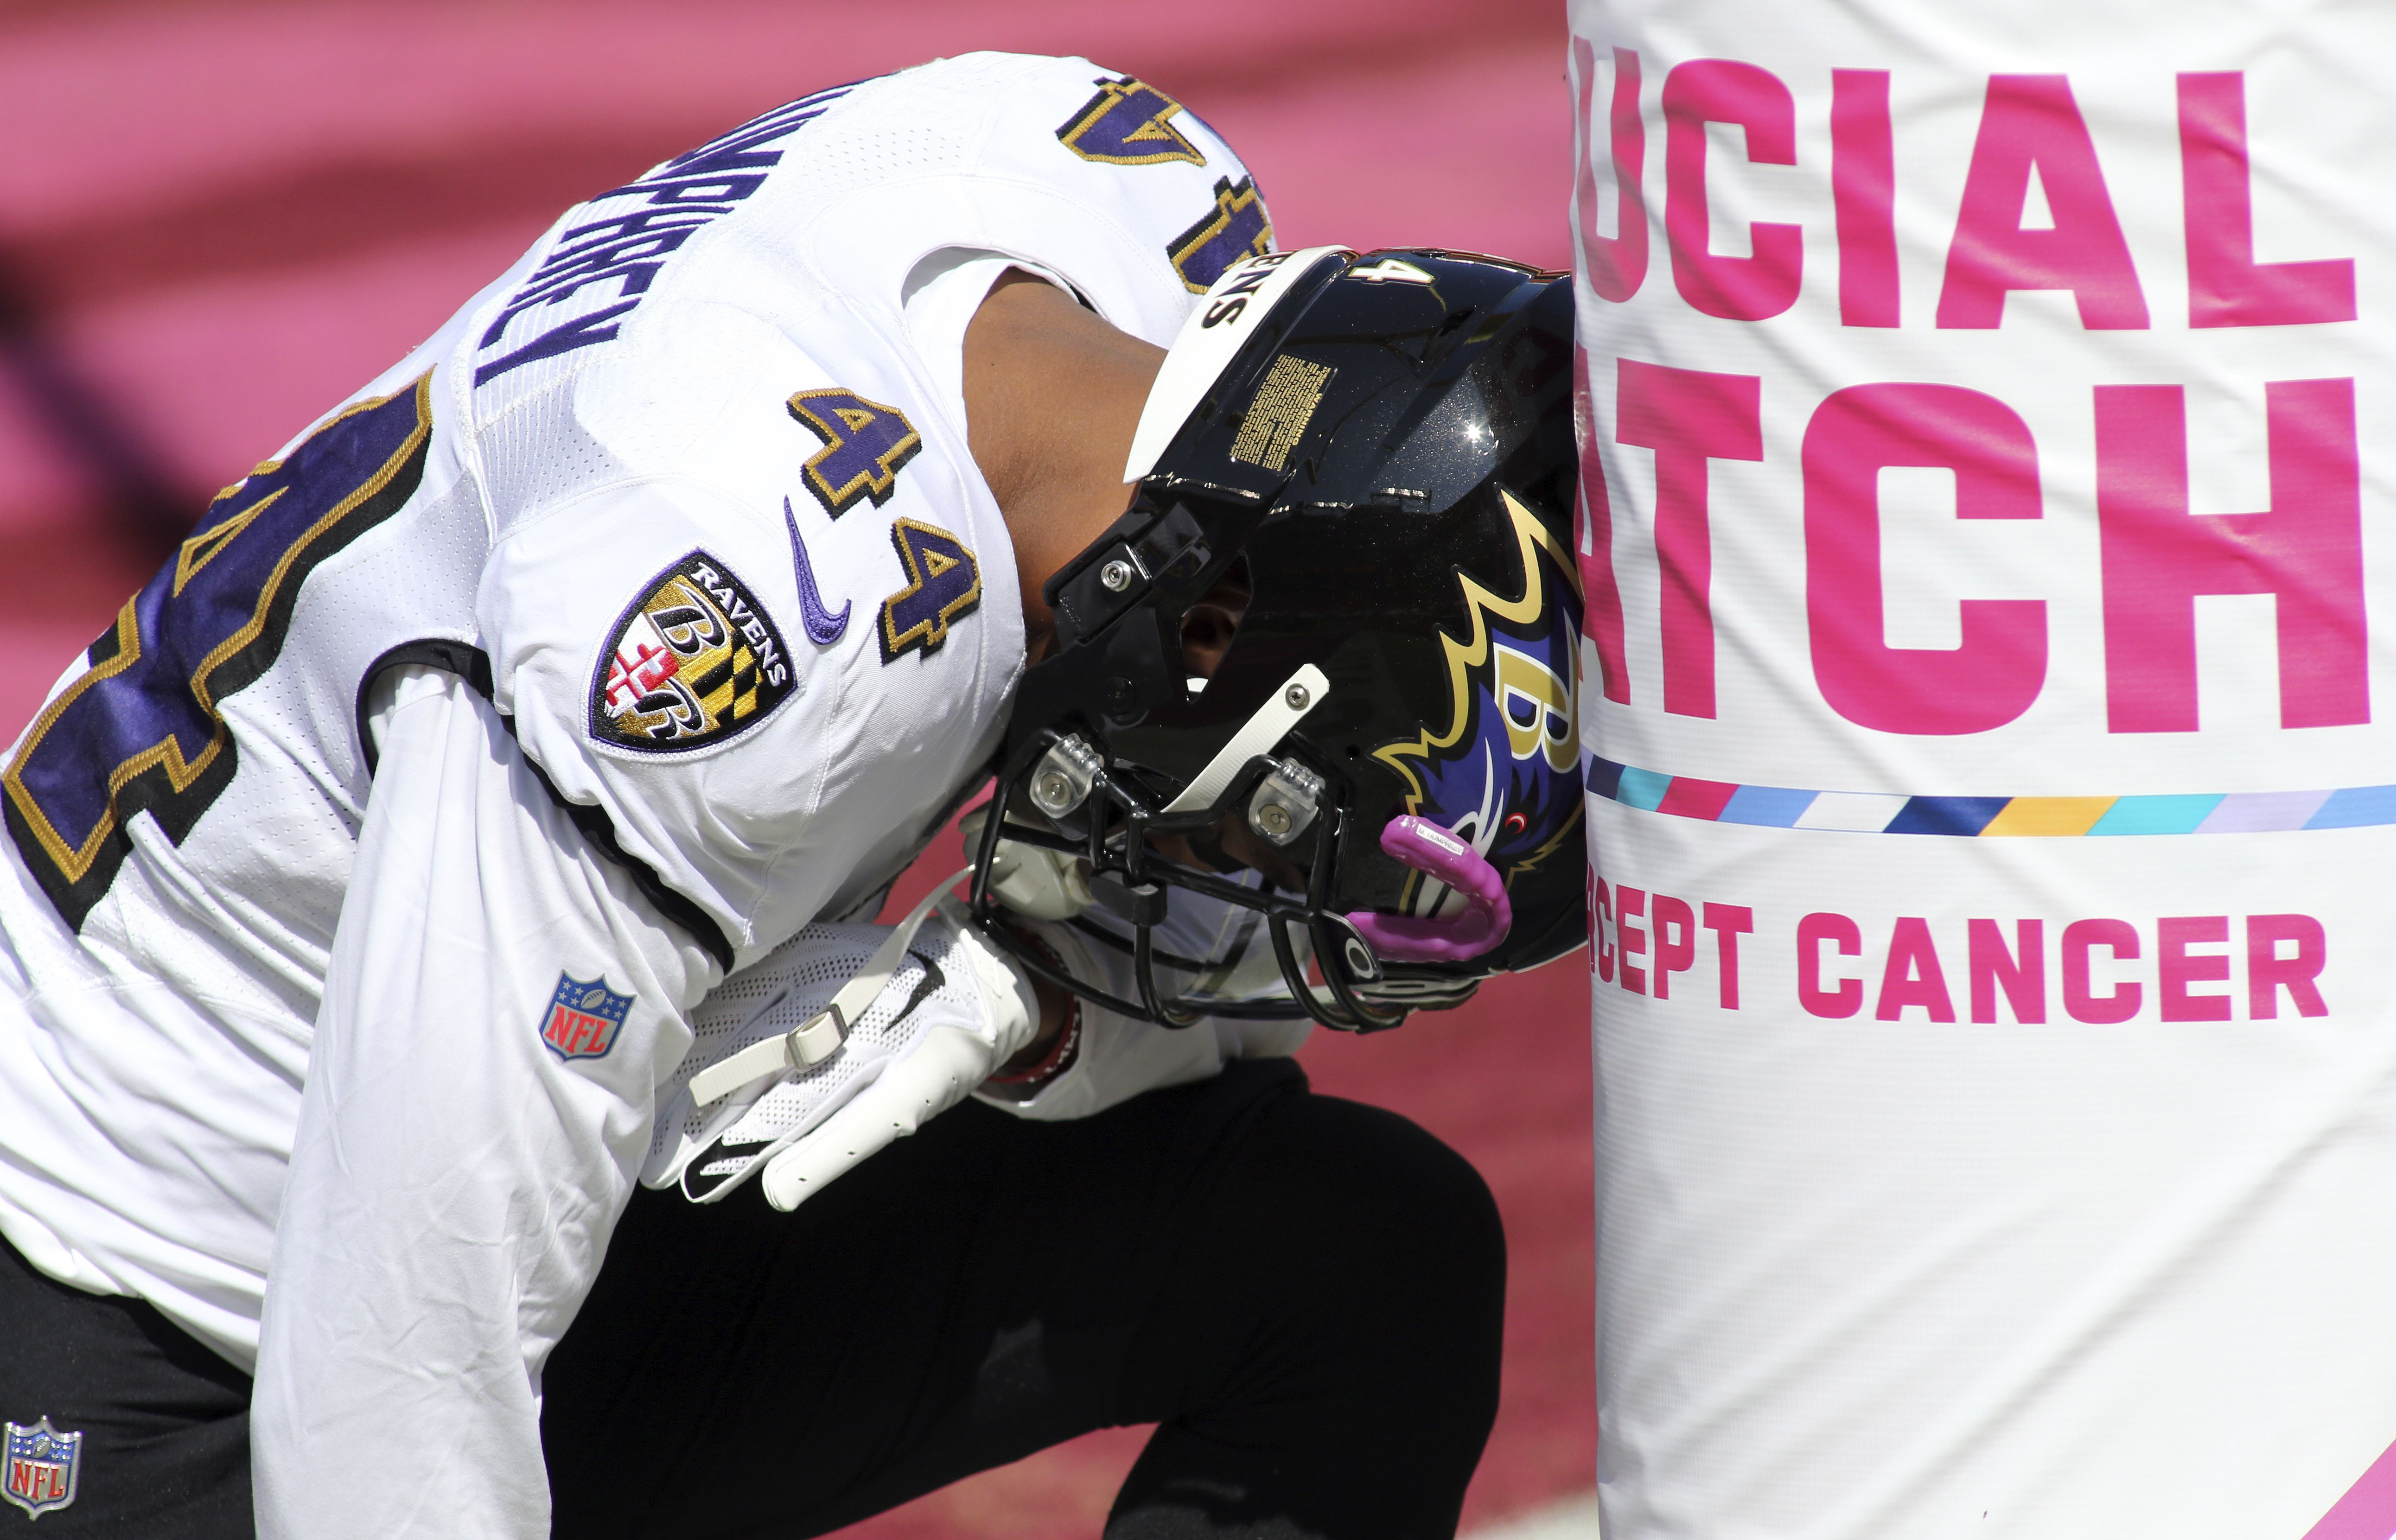 Baltimore Ravens cornerback Marlon Humphrey (44) kneels in from of an NFL Breast Cancer Awareness sign before an NFL match against the Baltimore Ravens and the Washington Football Team , Sunday, Oct. 4, 2020 in Landover, Md. (AP Photo/Daniel Kucin Jr.)